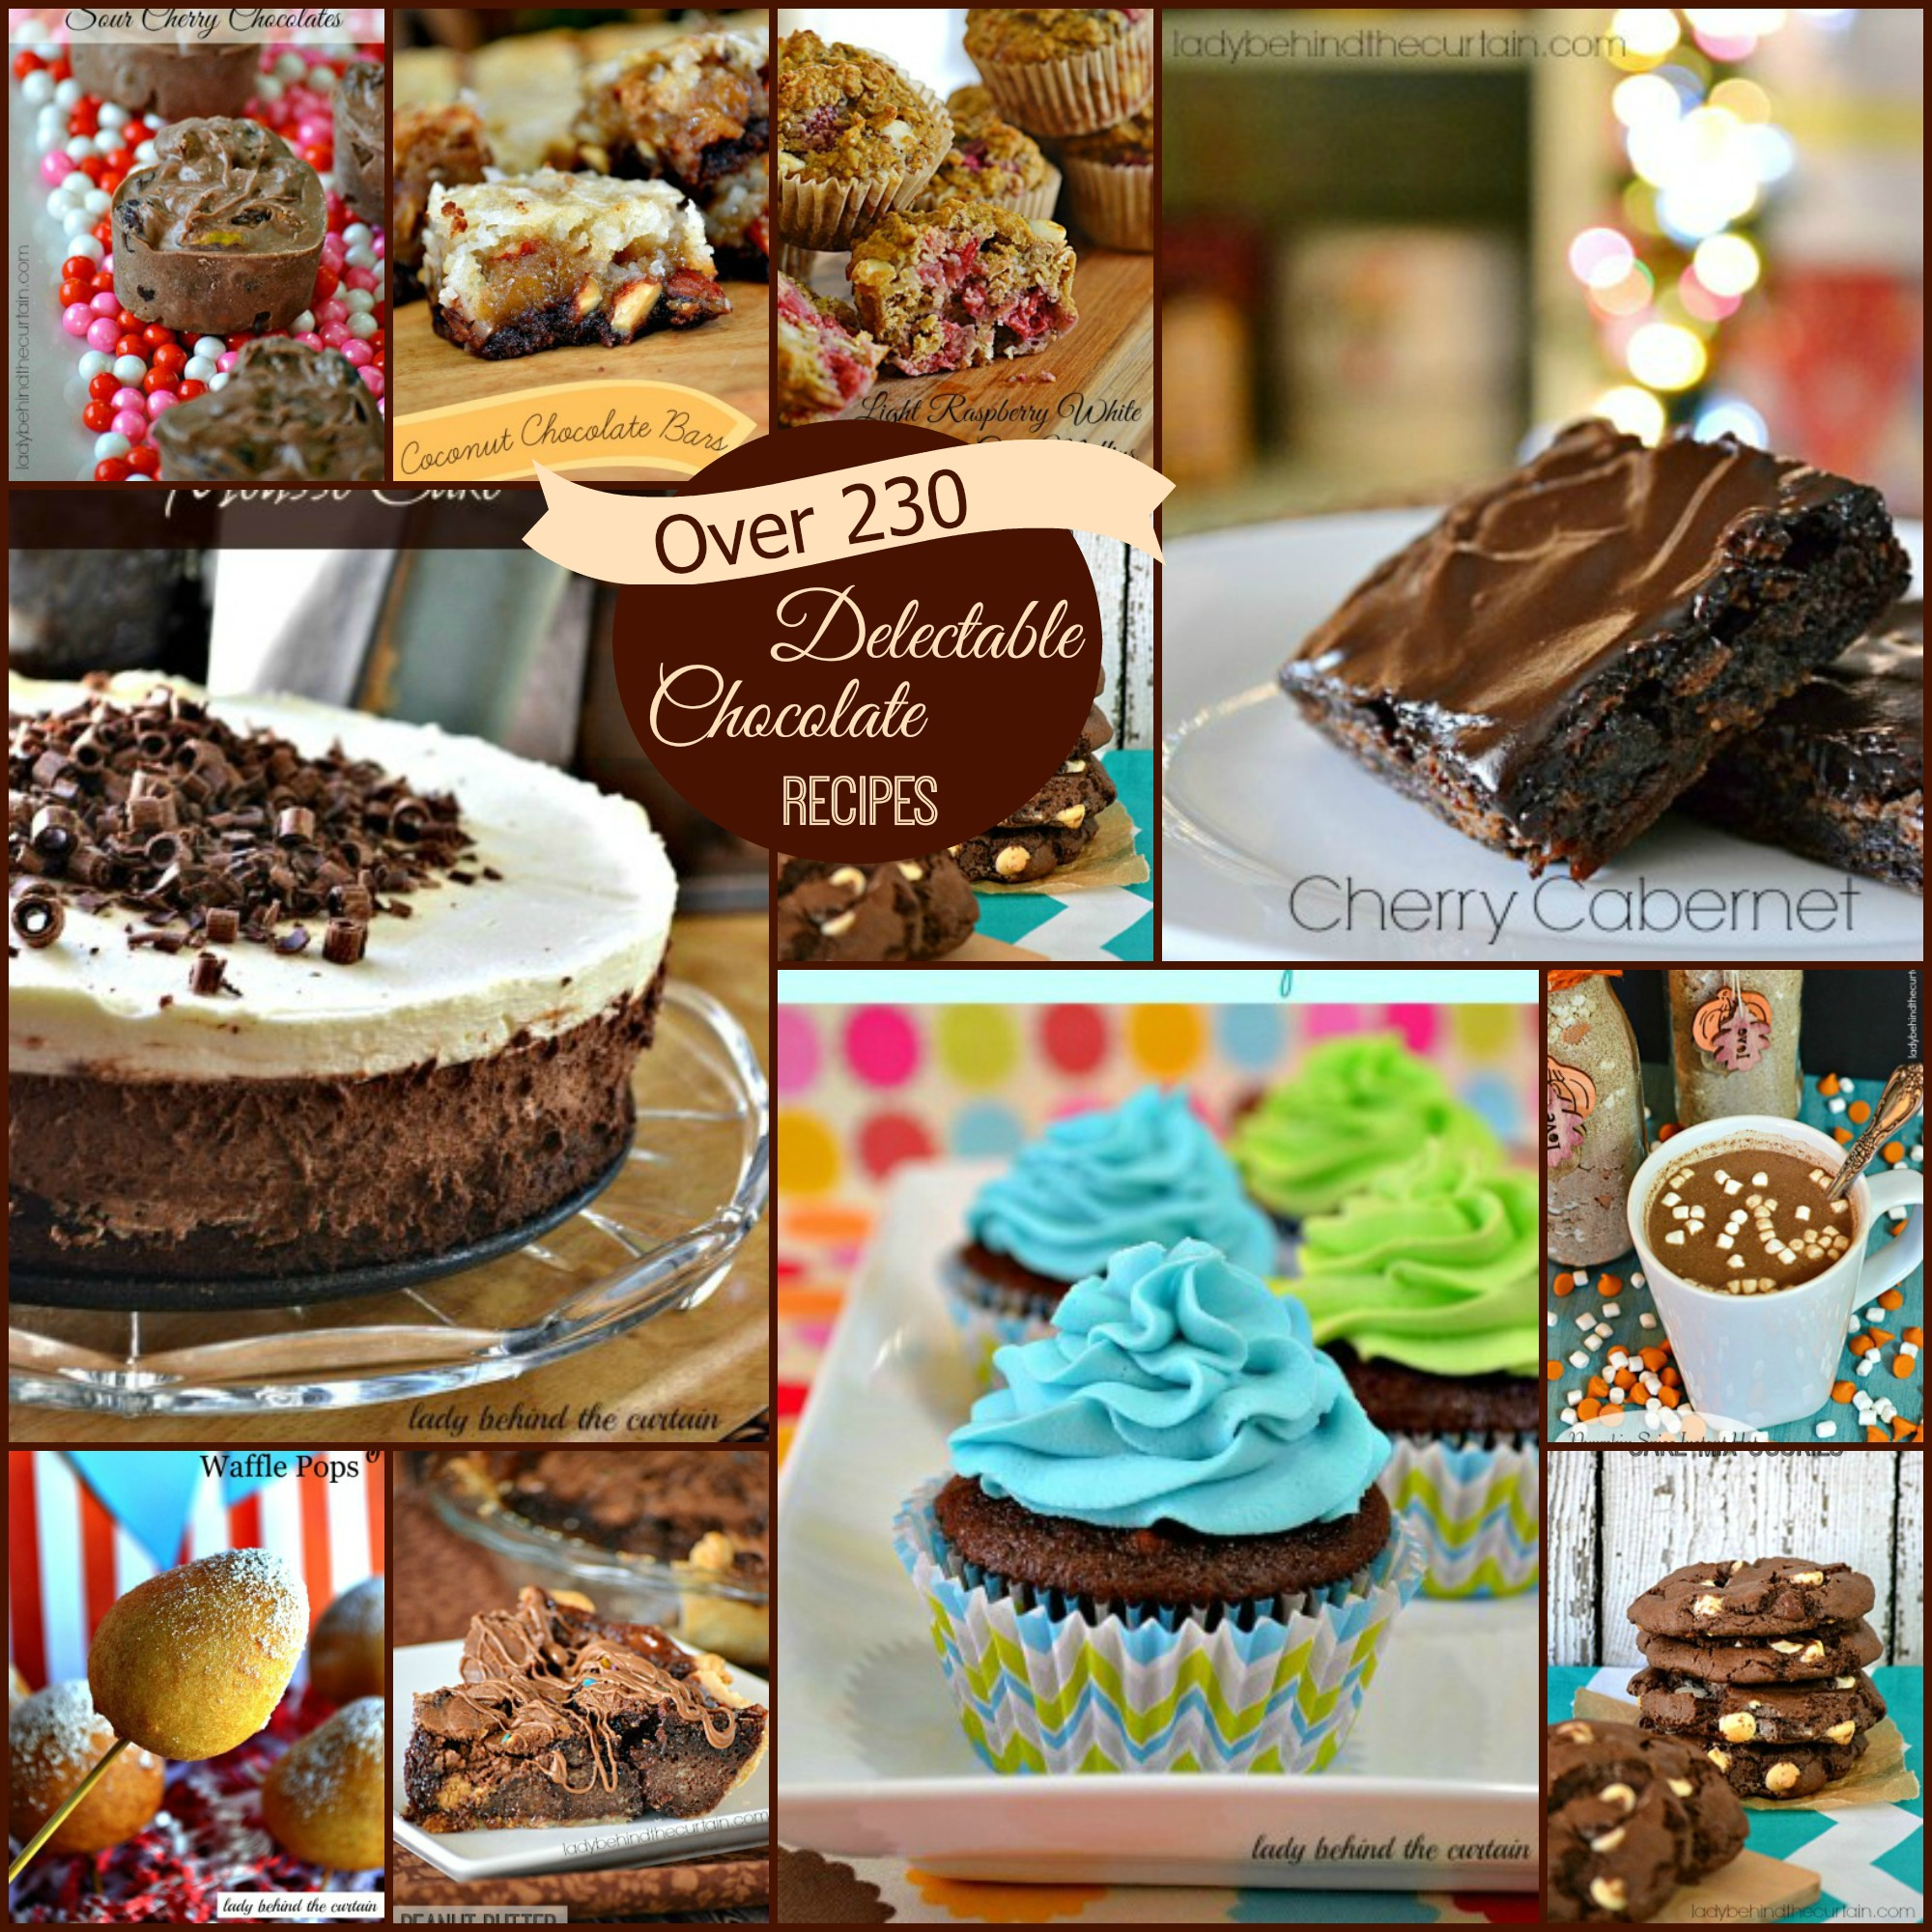 Over-230-Delectable-Chocolate-Recipes-Lady-Behind-The-Curtain